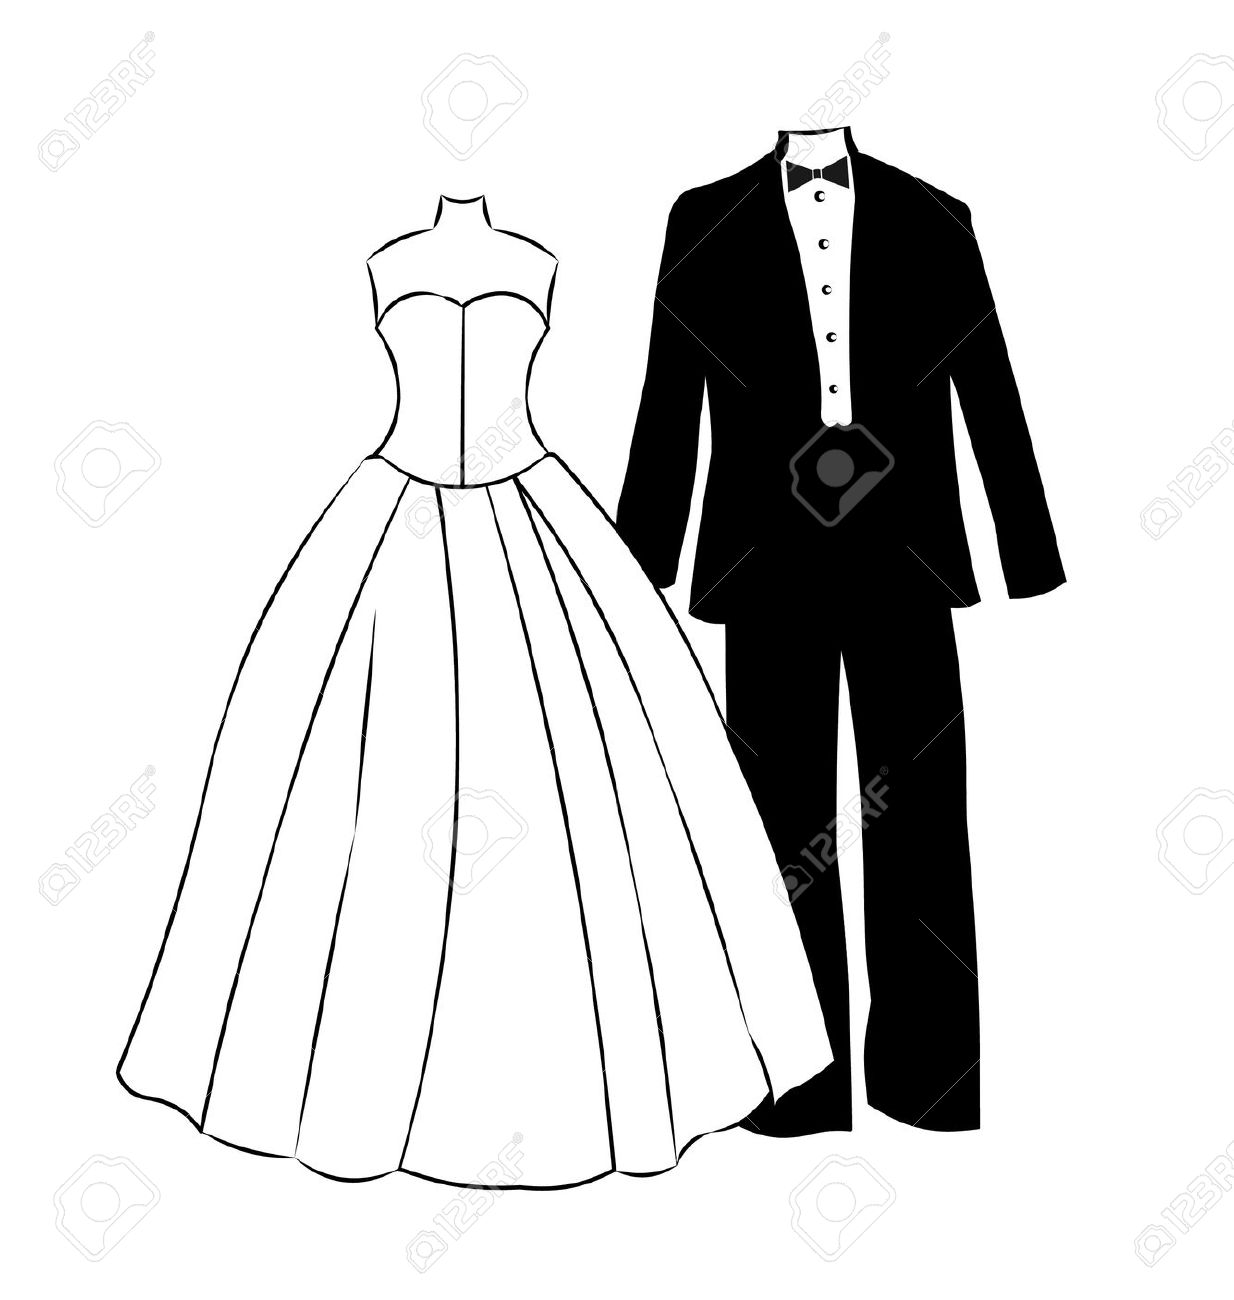 Prom dress images in black and white clipart freeuse download Tuxedo Clipart | Free download best Tuxedo Clipart on ... freeuse download